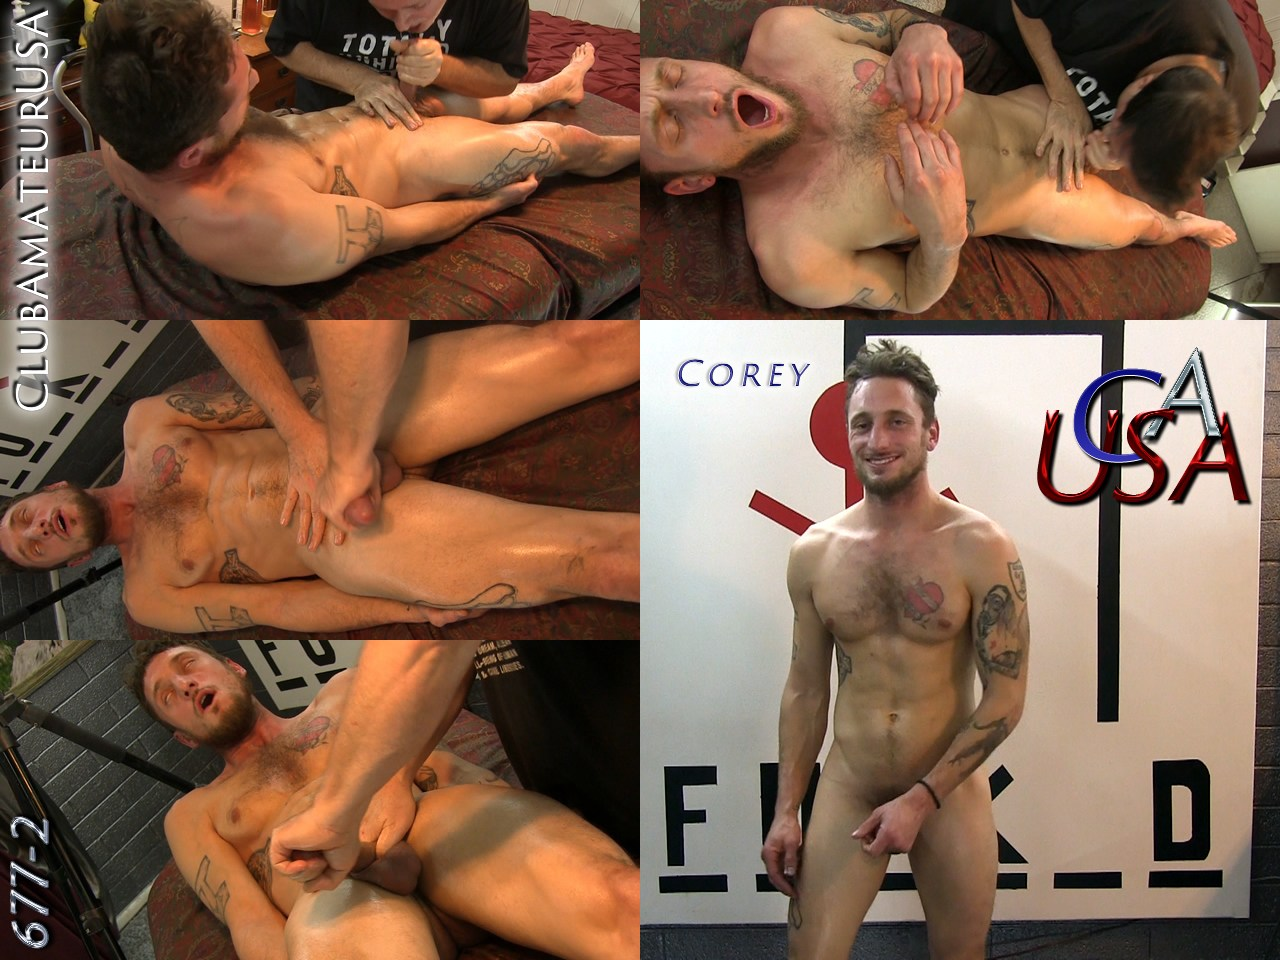 Download or Stream CAUSA 677 Corey - 2 of 2 - Click Here Now